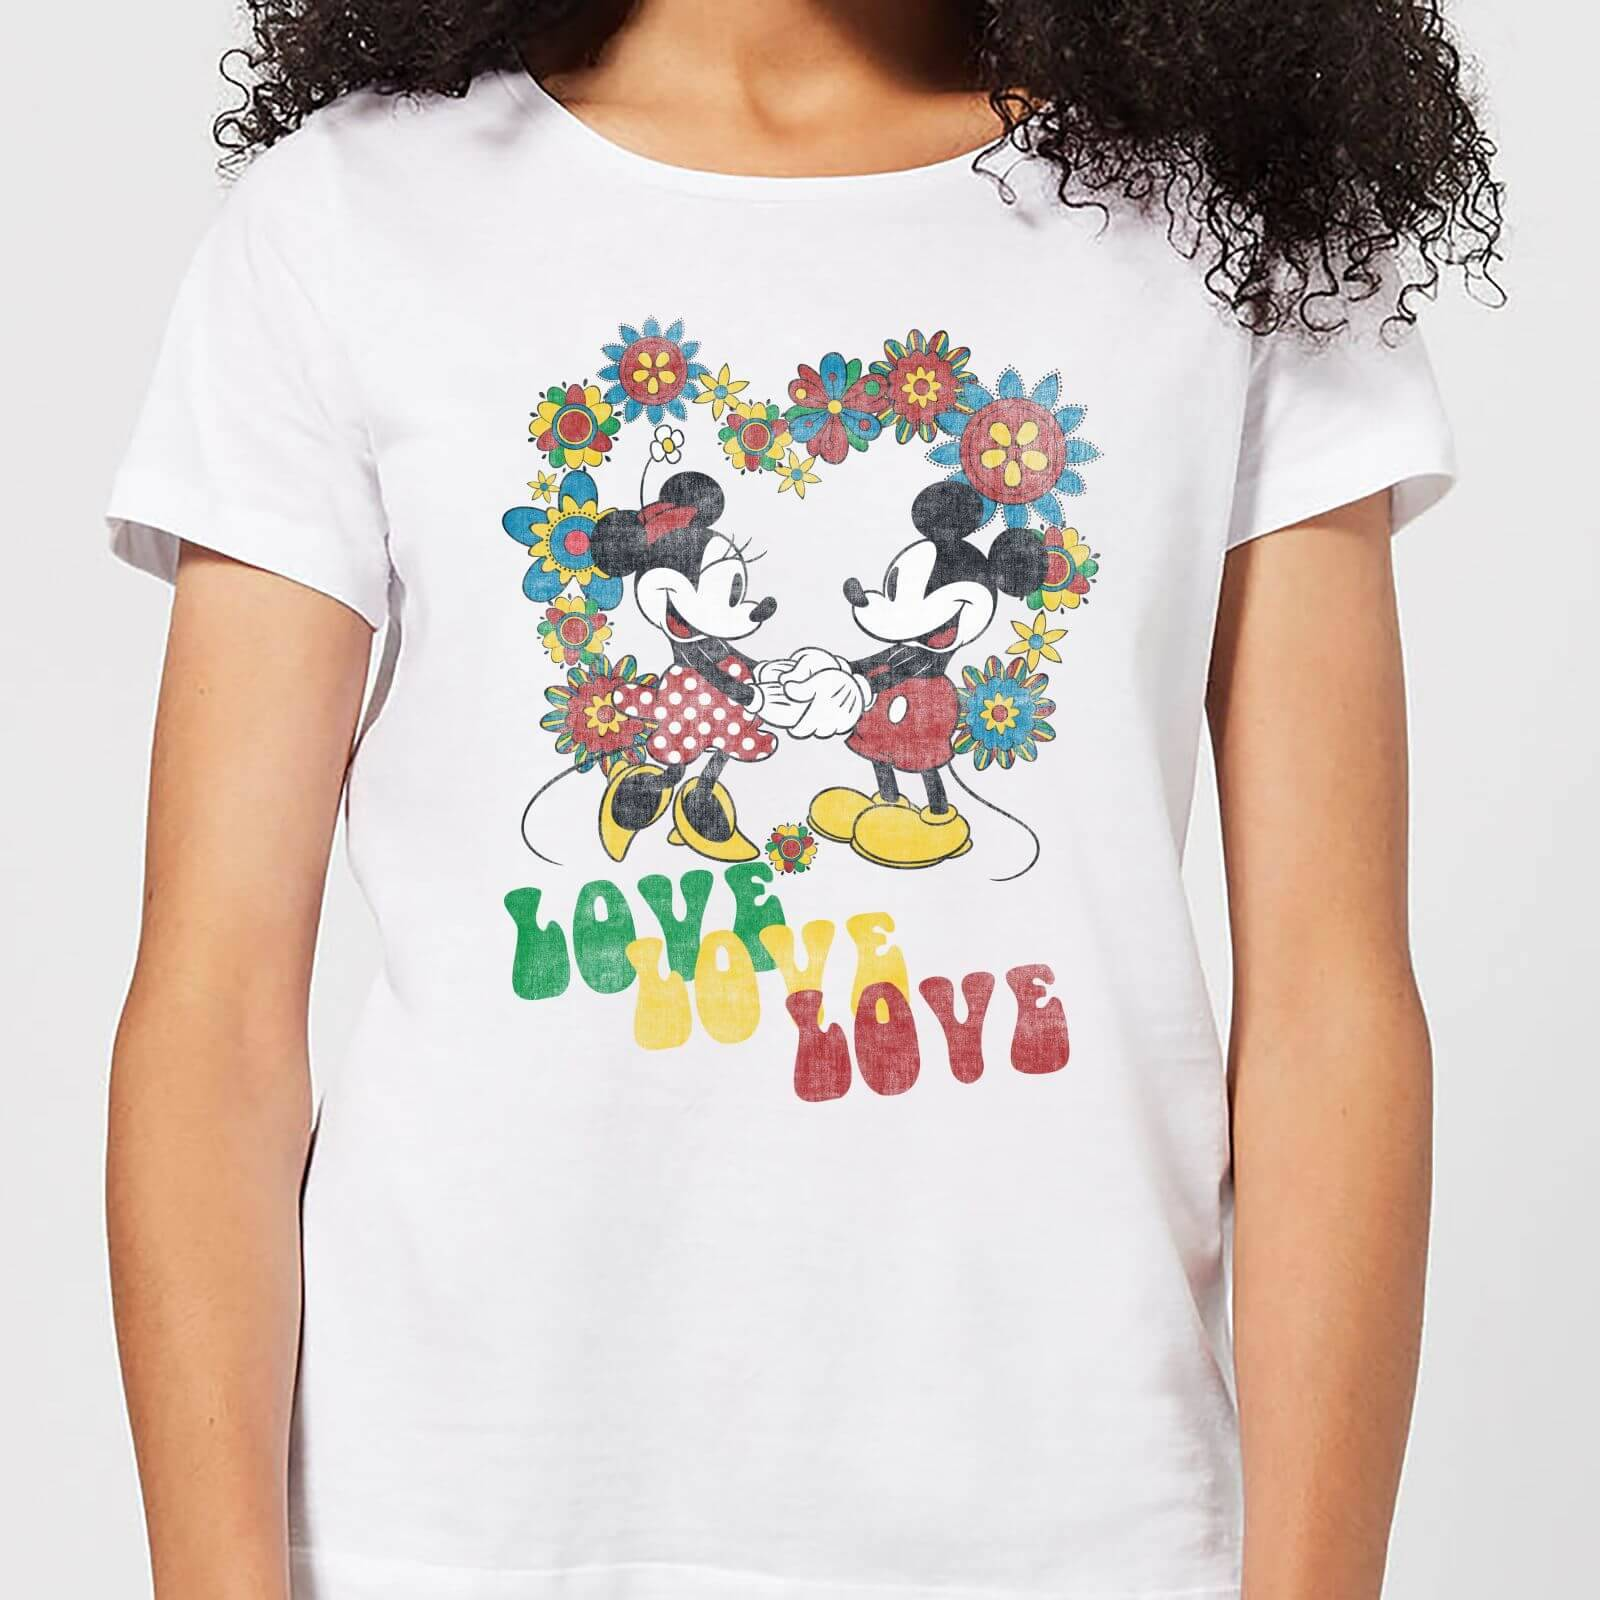 Disney Mickey Mouse Hippie Love Women's T-Shirt - White - L - White